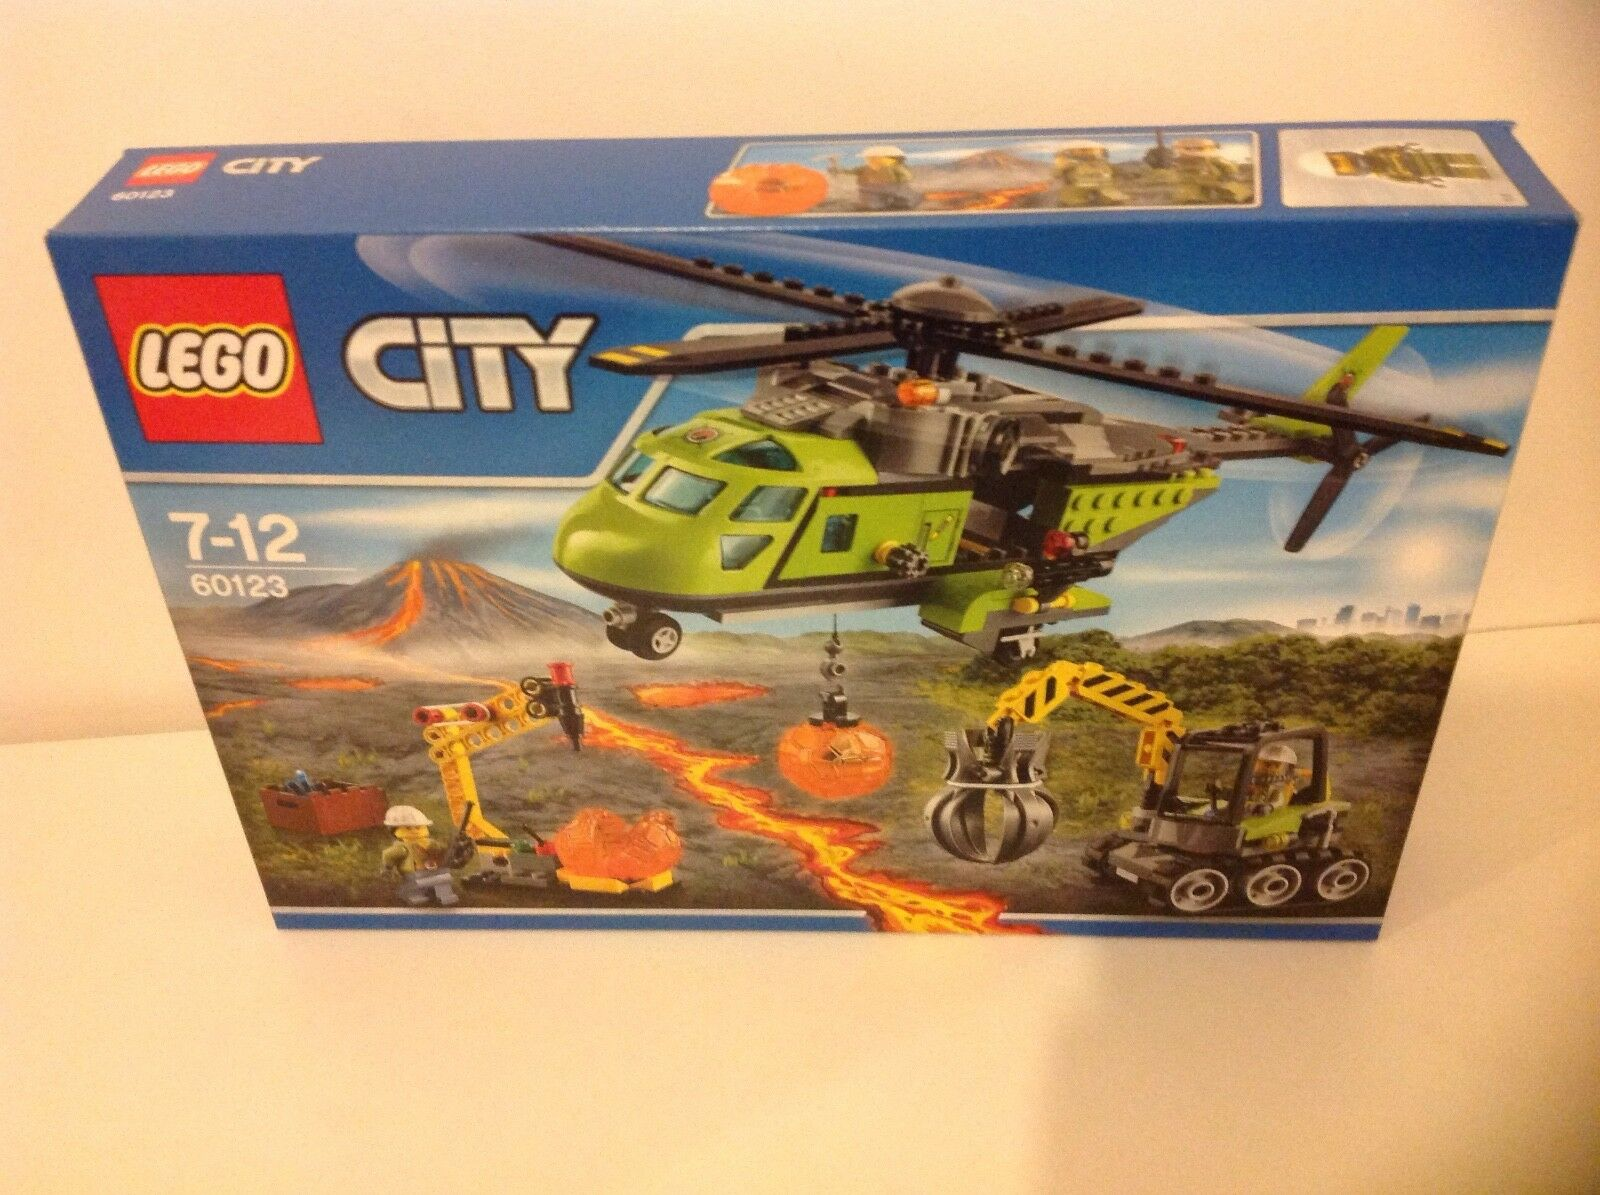 New Lego 60123 City In Out Volcano Supply Helicopter Set With 3 Mini Figures.